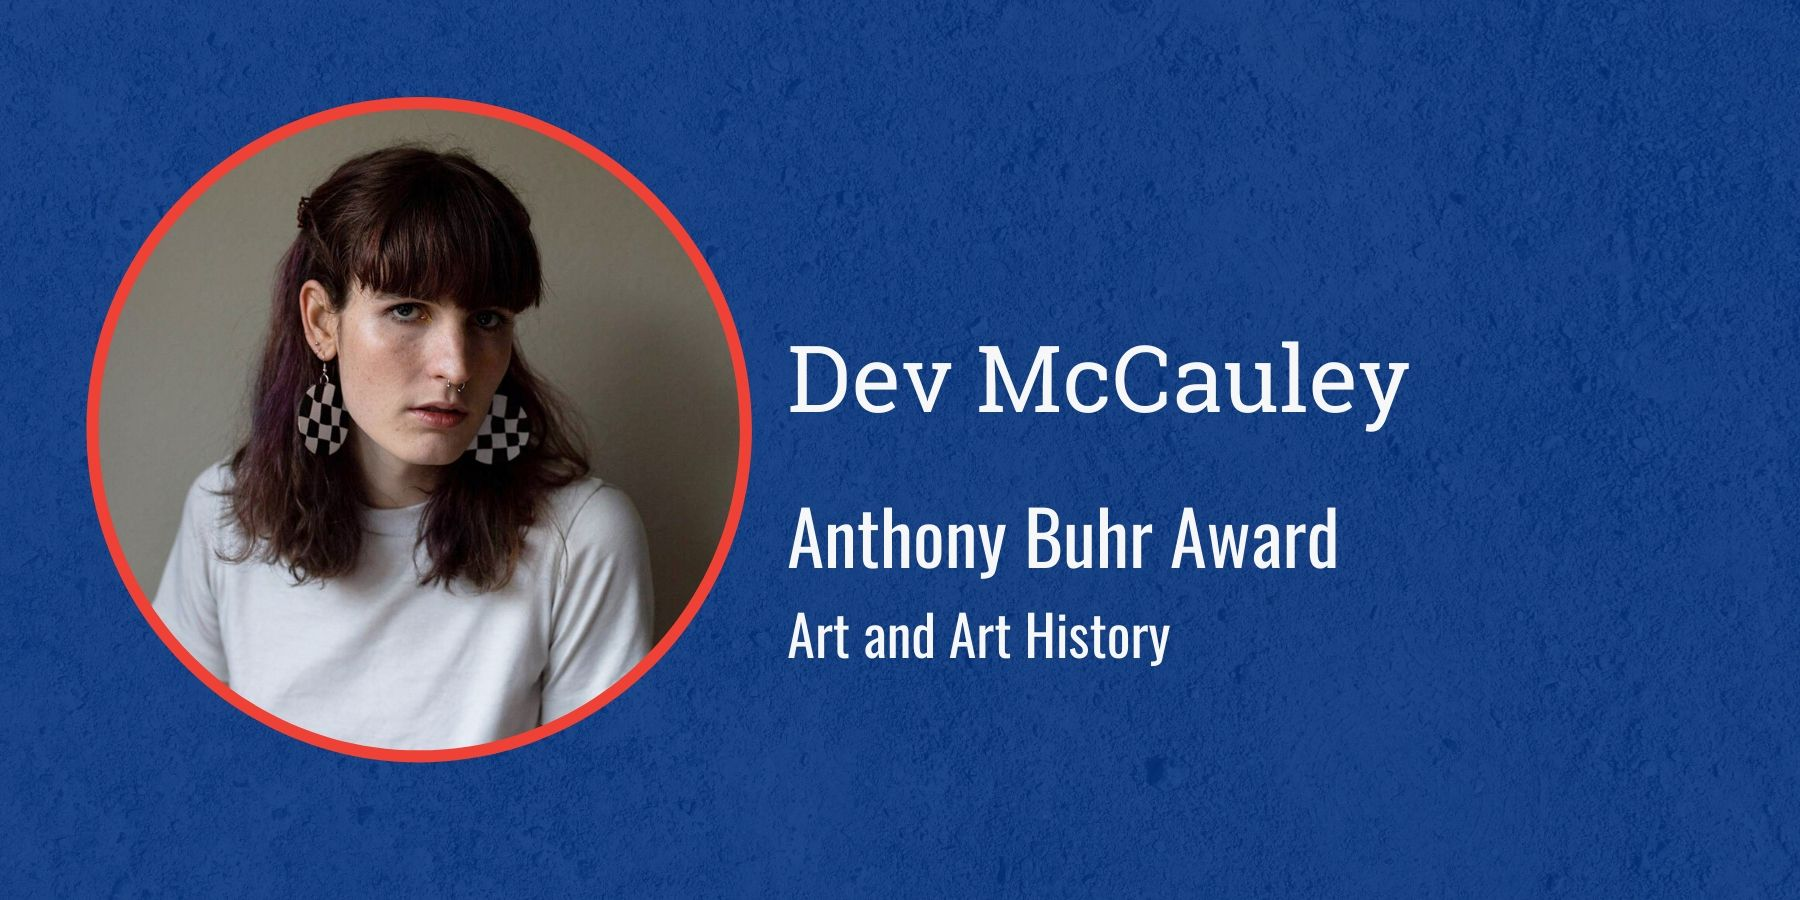 Photo of Dev McCauley with text Anthony Buhr Award, Art and Art History